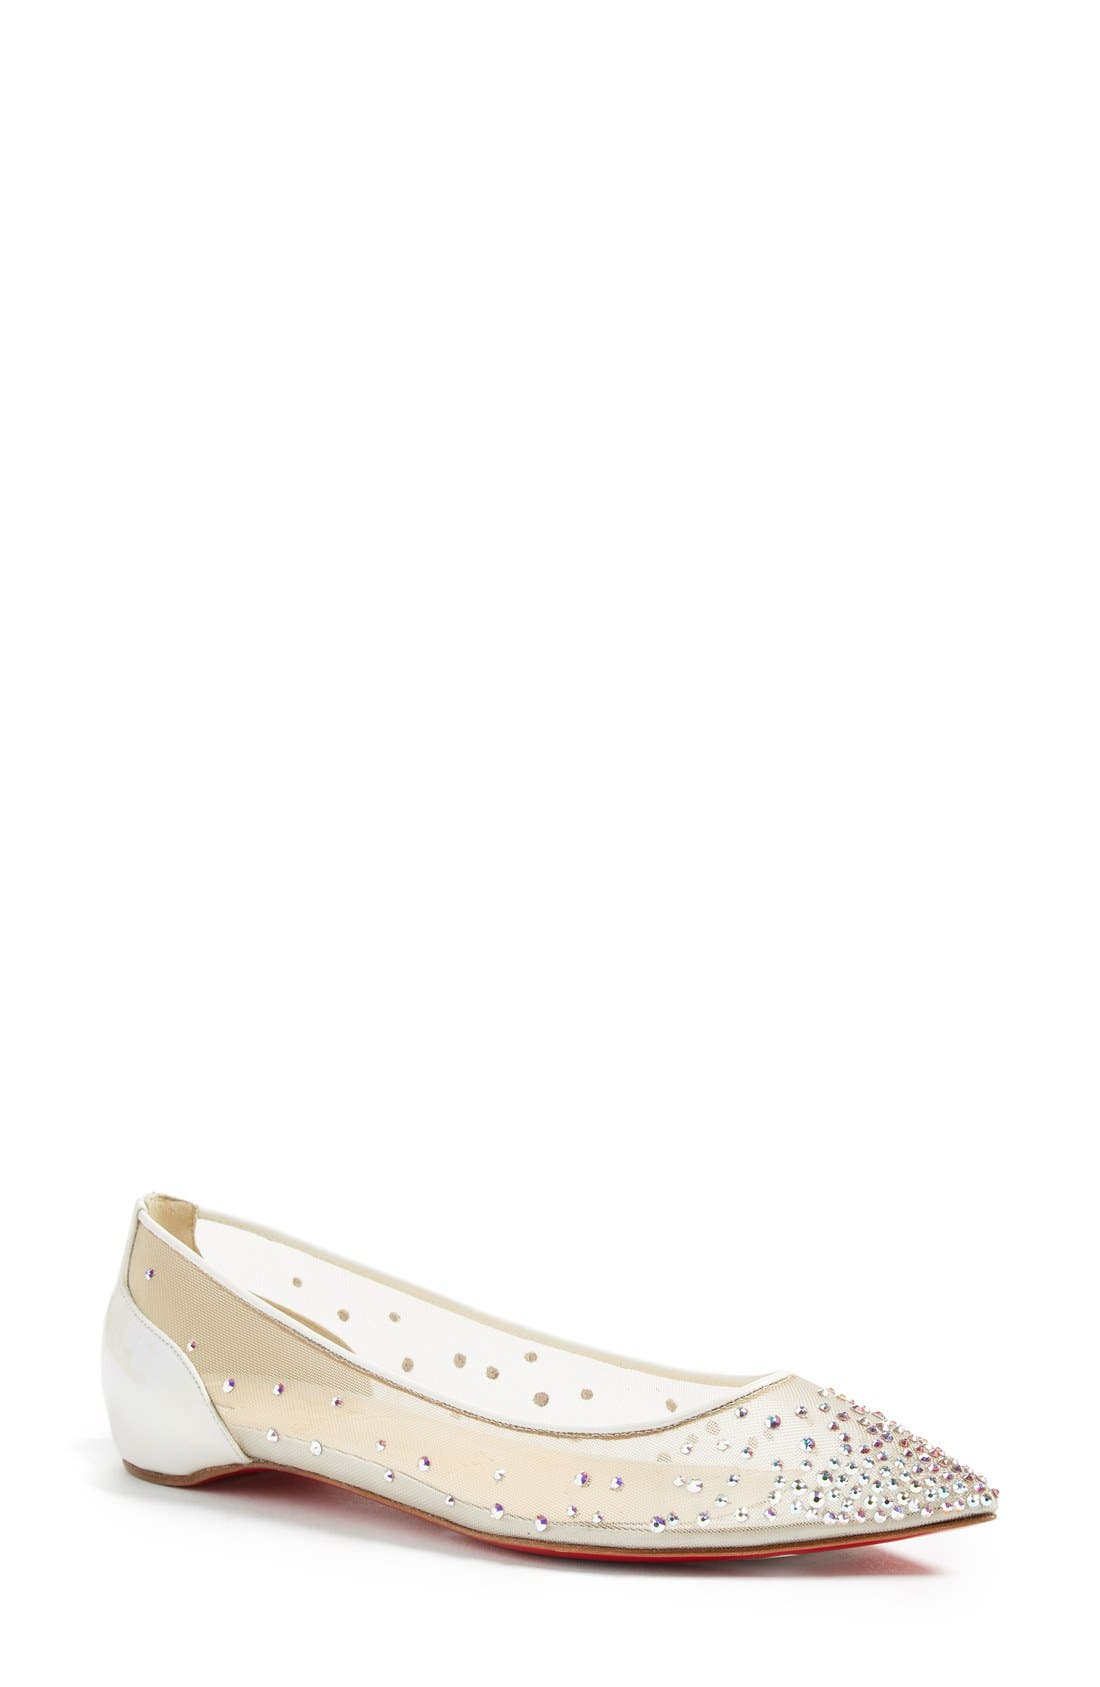 Follies Strass Pointy Toe Flat,                         Main,                         color, White